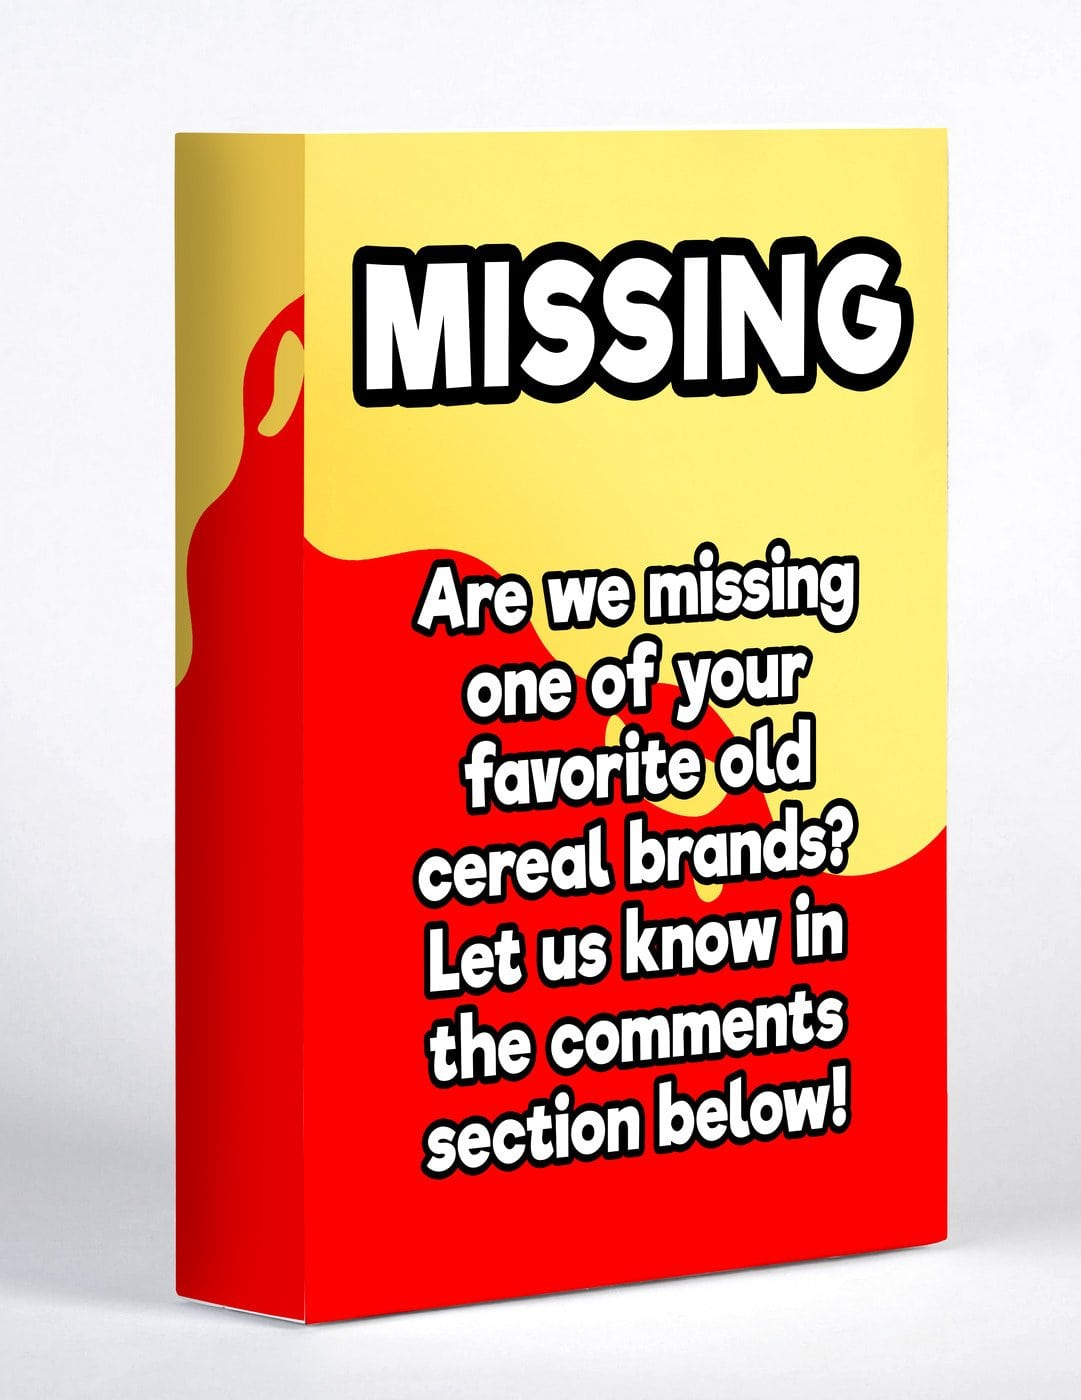 Are we missing one of your favorite old cereal brands